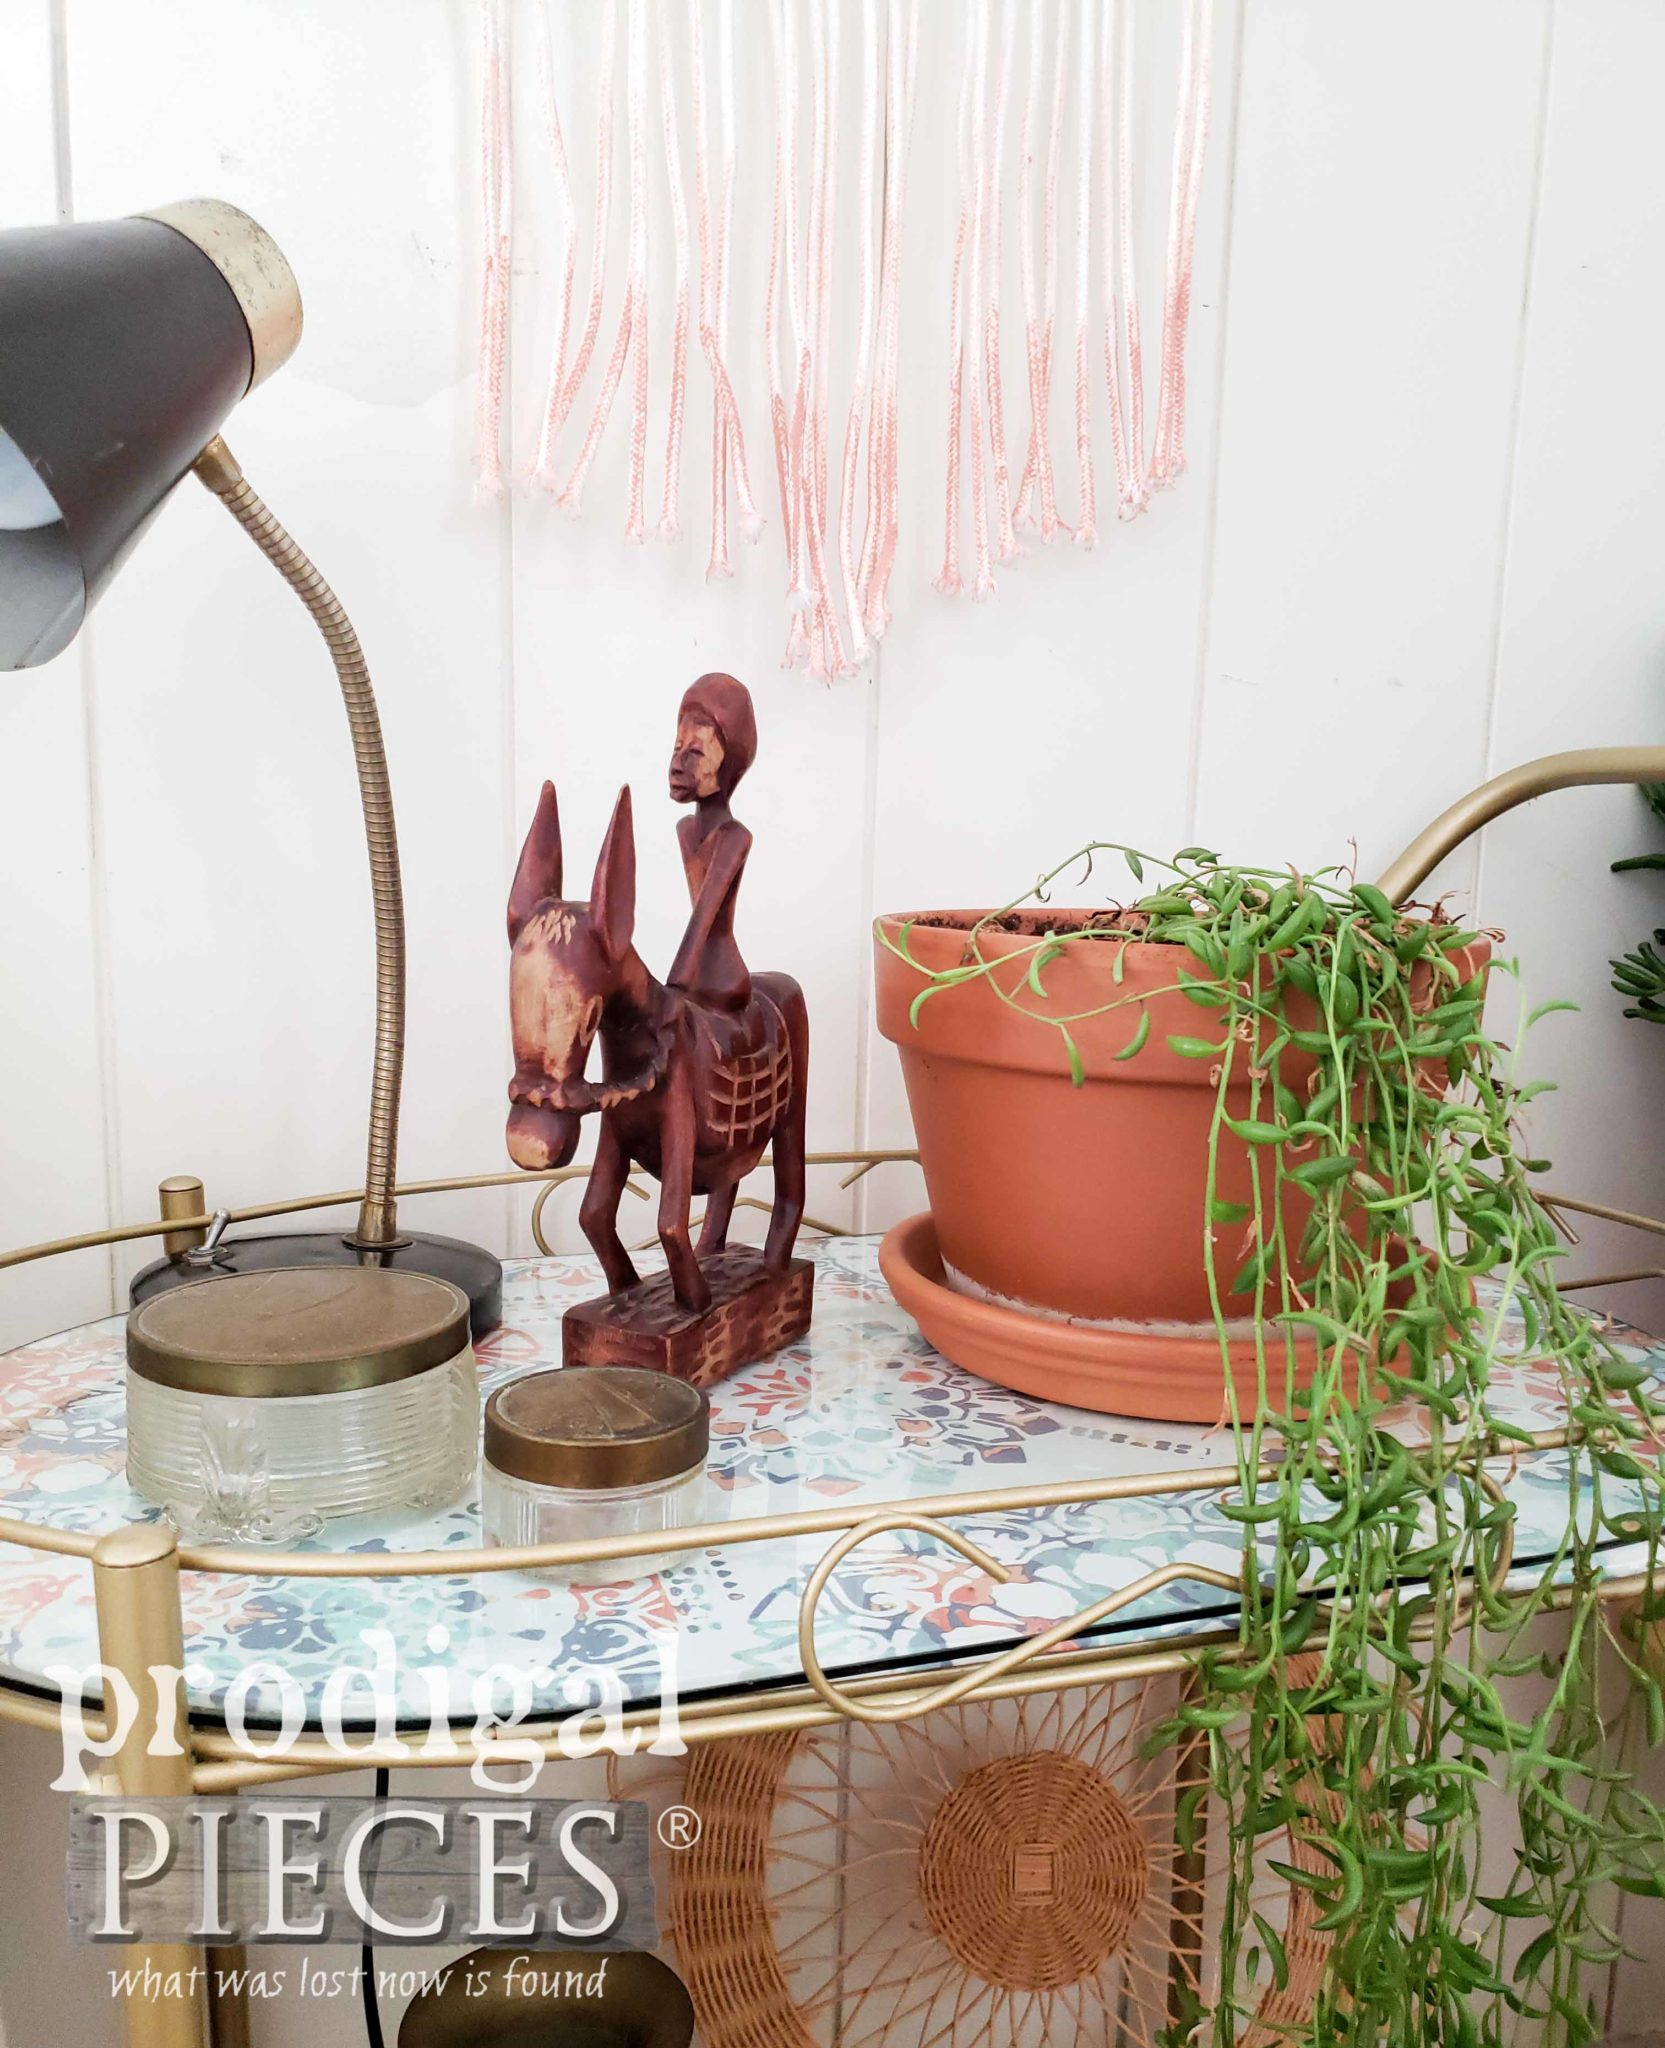 Vintage Boho Style Home Decor as Styled by Larissa of Prodigal Pieces | prodigalpieces.com